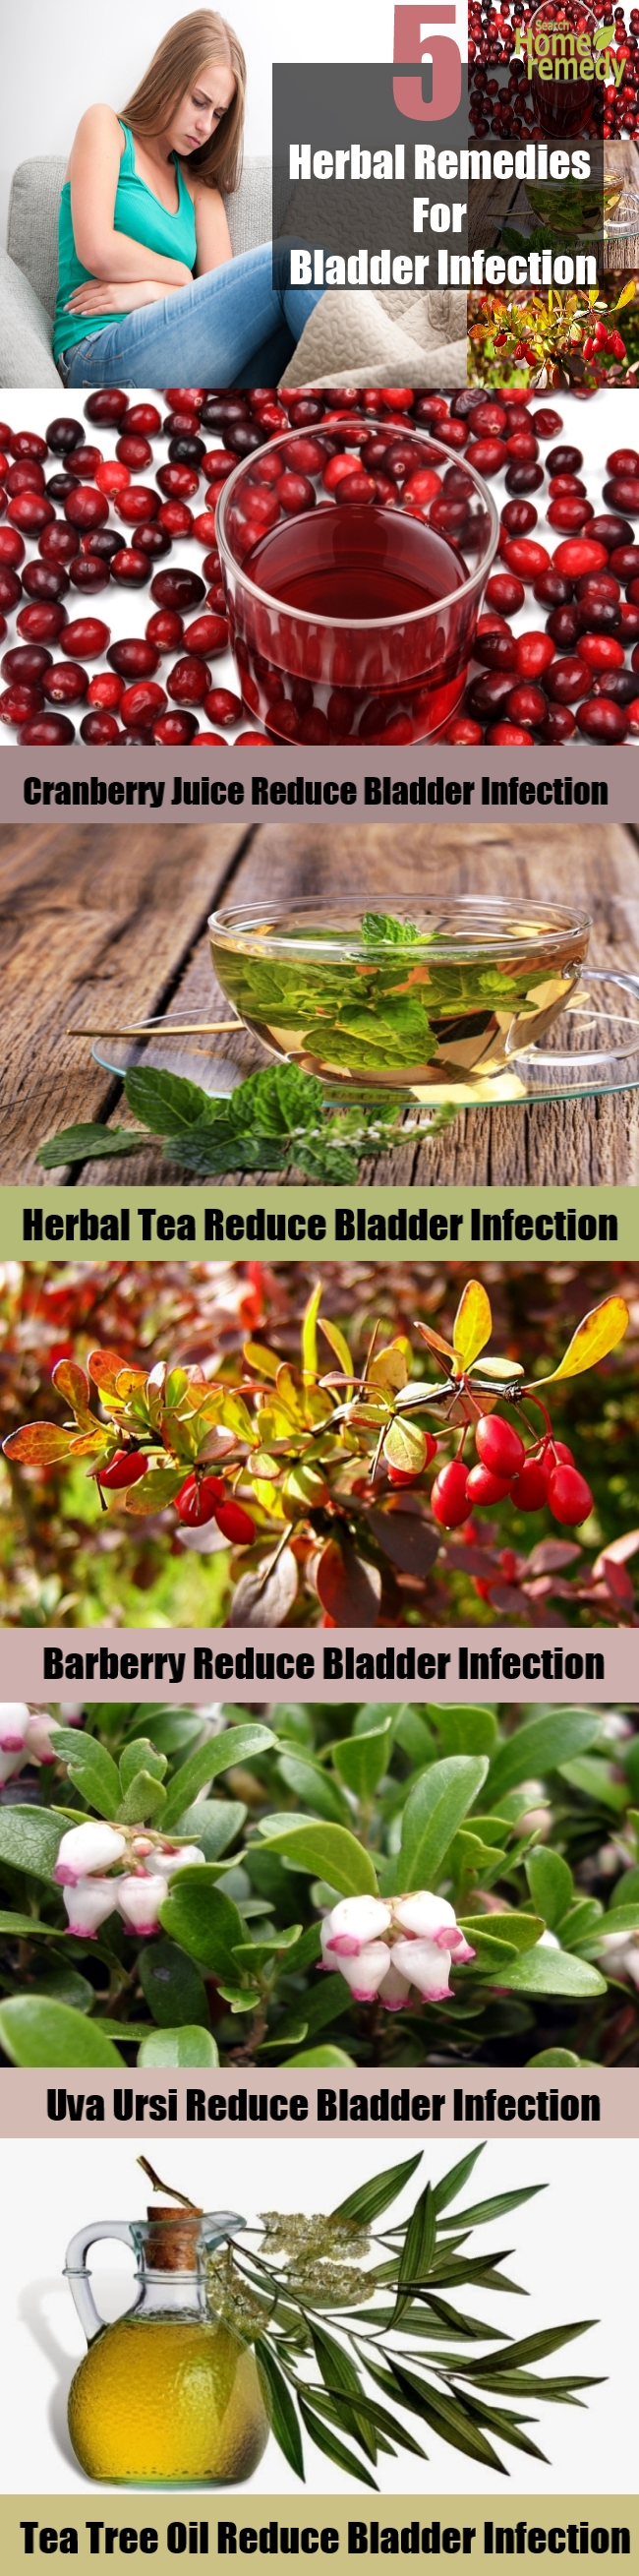 Top 5 Herbal Remedies For Bladder Infection